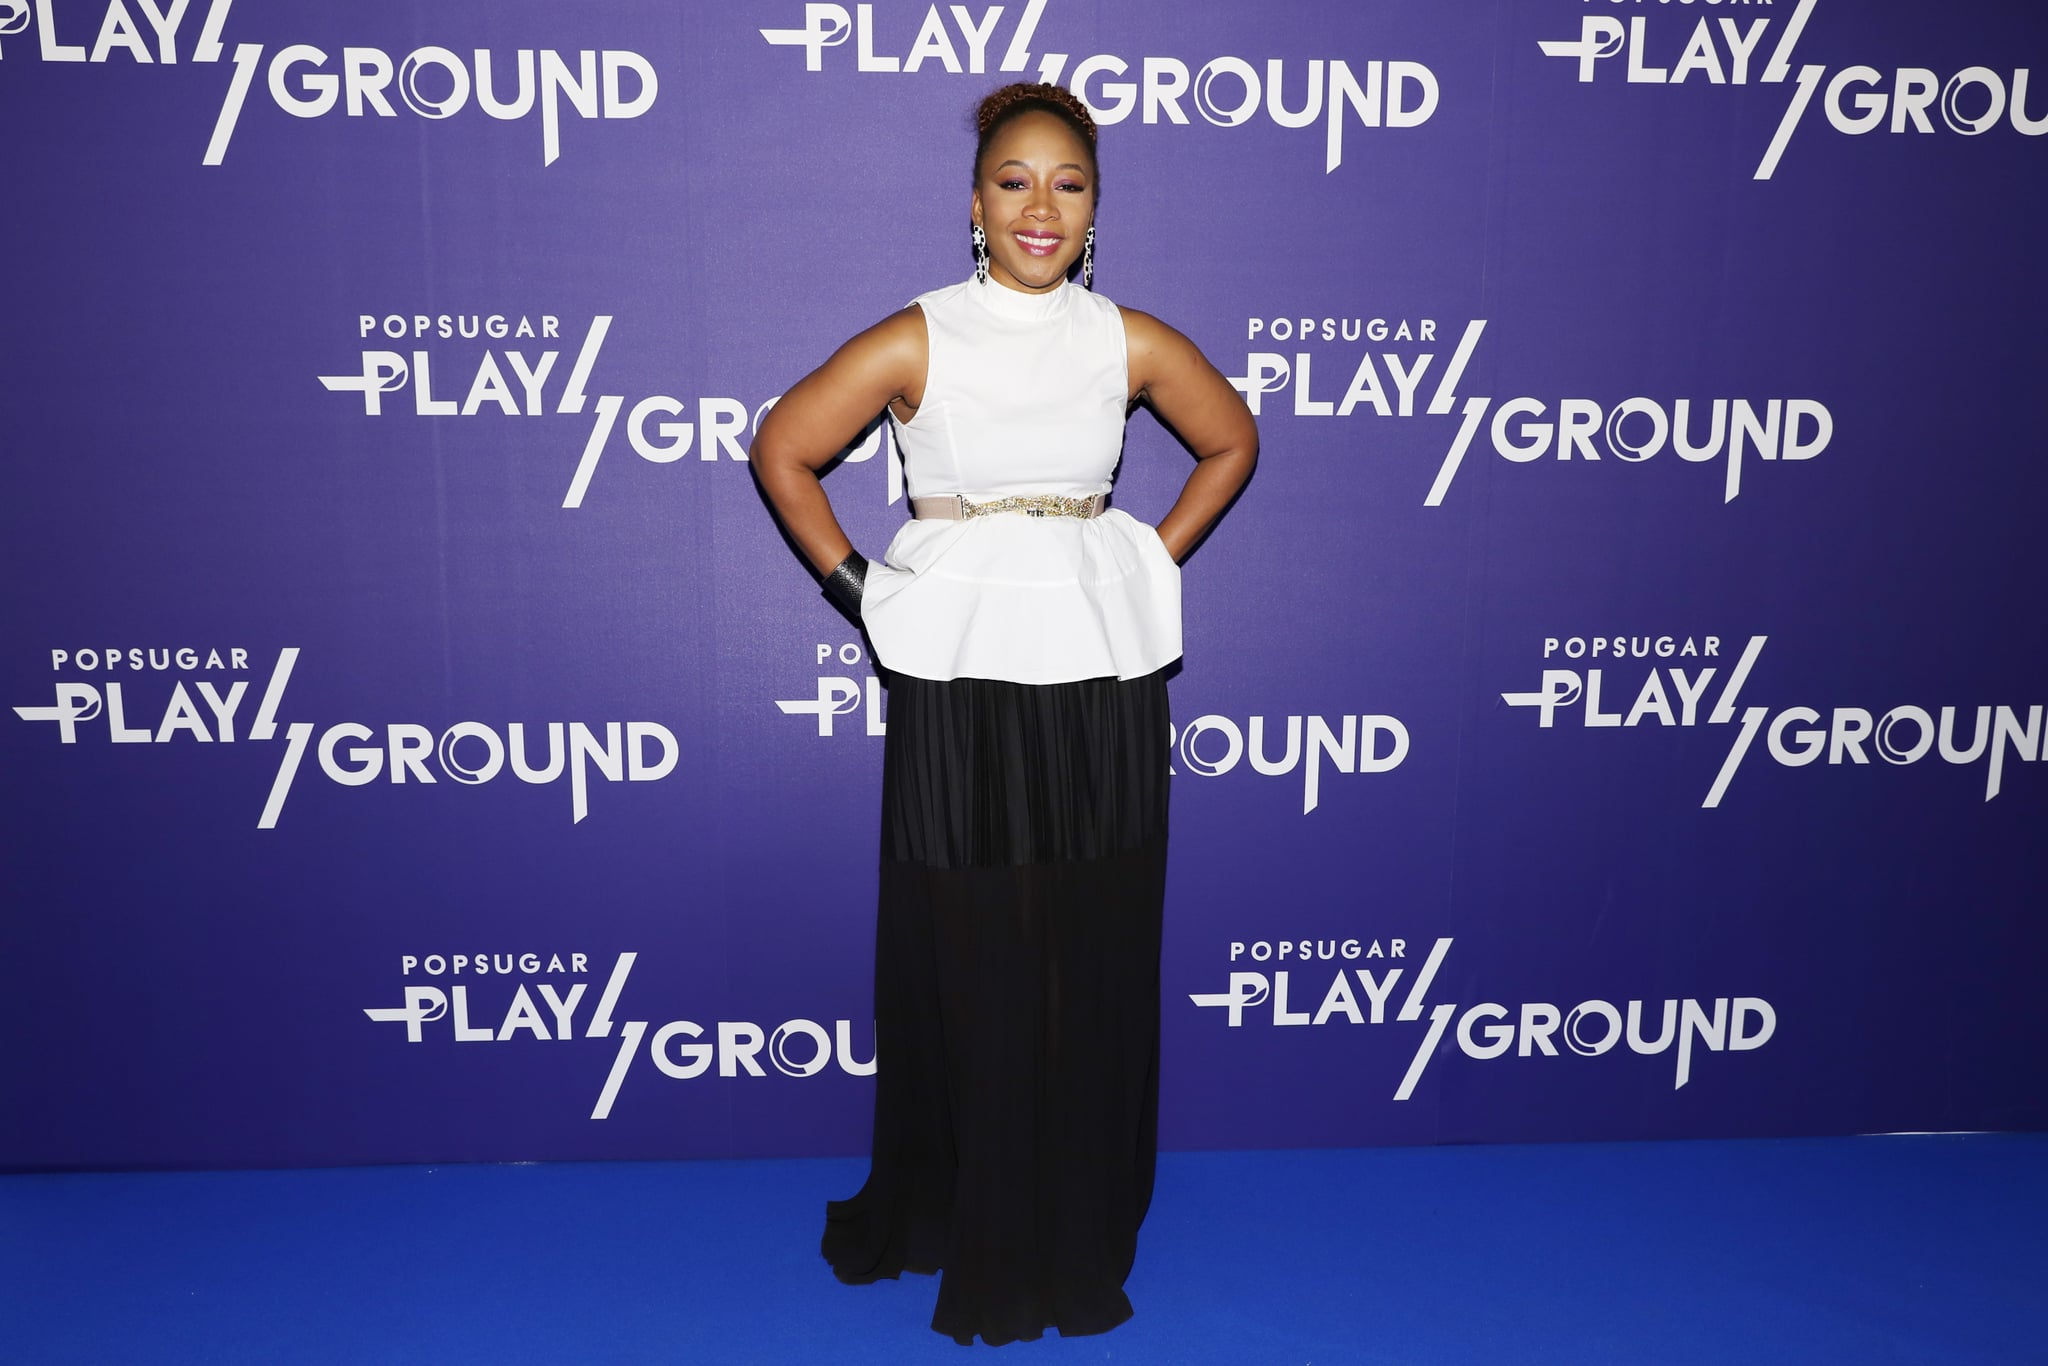 NEW YORK, NY - JUNE 09:  Senior Vice President Covergirl, Ukonwa Ojo attends day 1 of POPSUGAR Play/Ground on June 9, 2018 in New York City.  (Photo by Cindy Ord/Getty Images  for POPSUGAR Play/Ground)